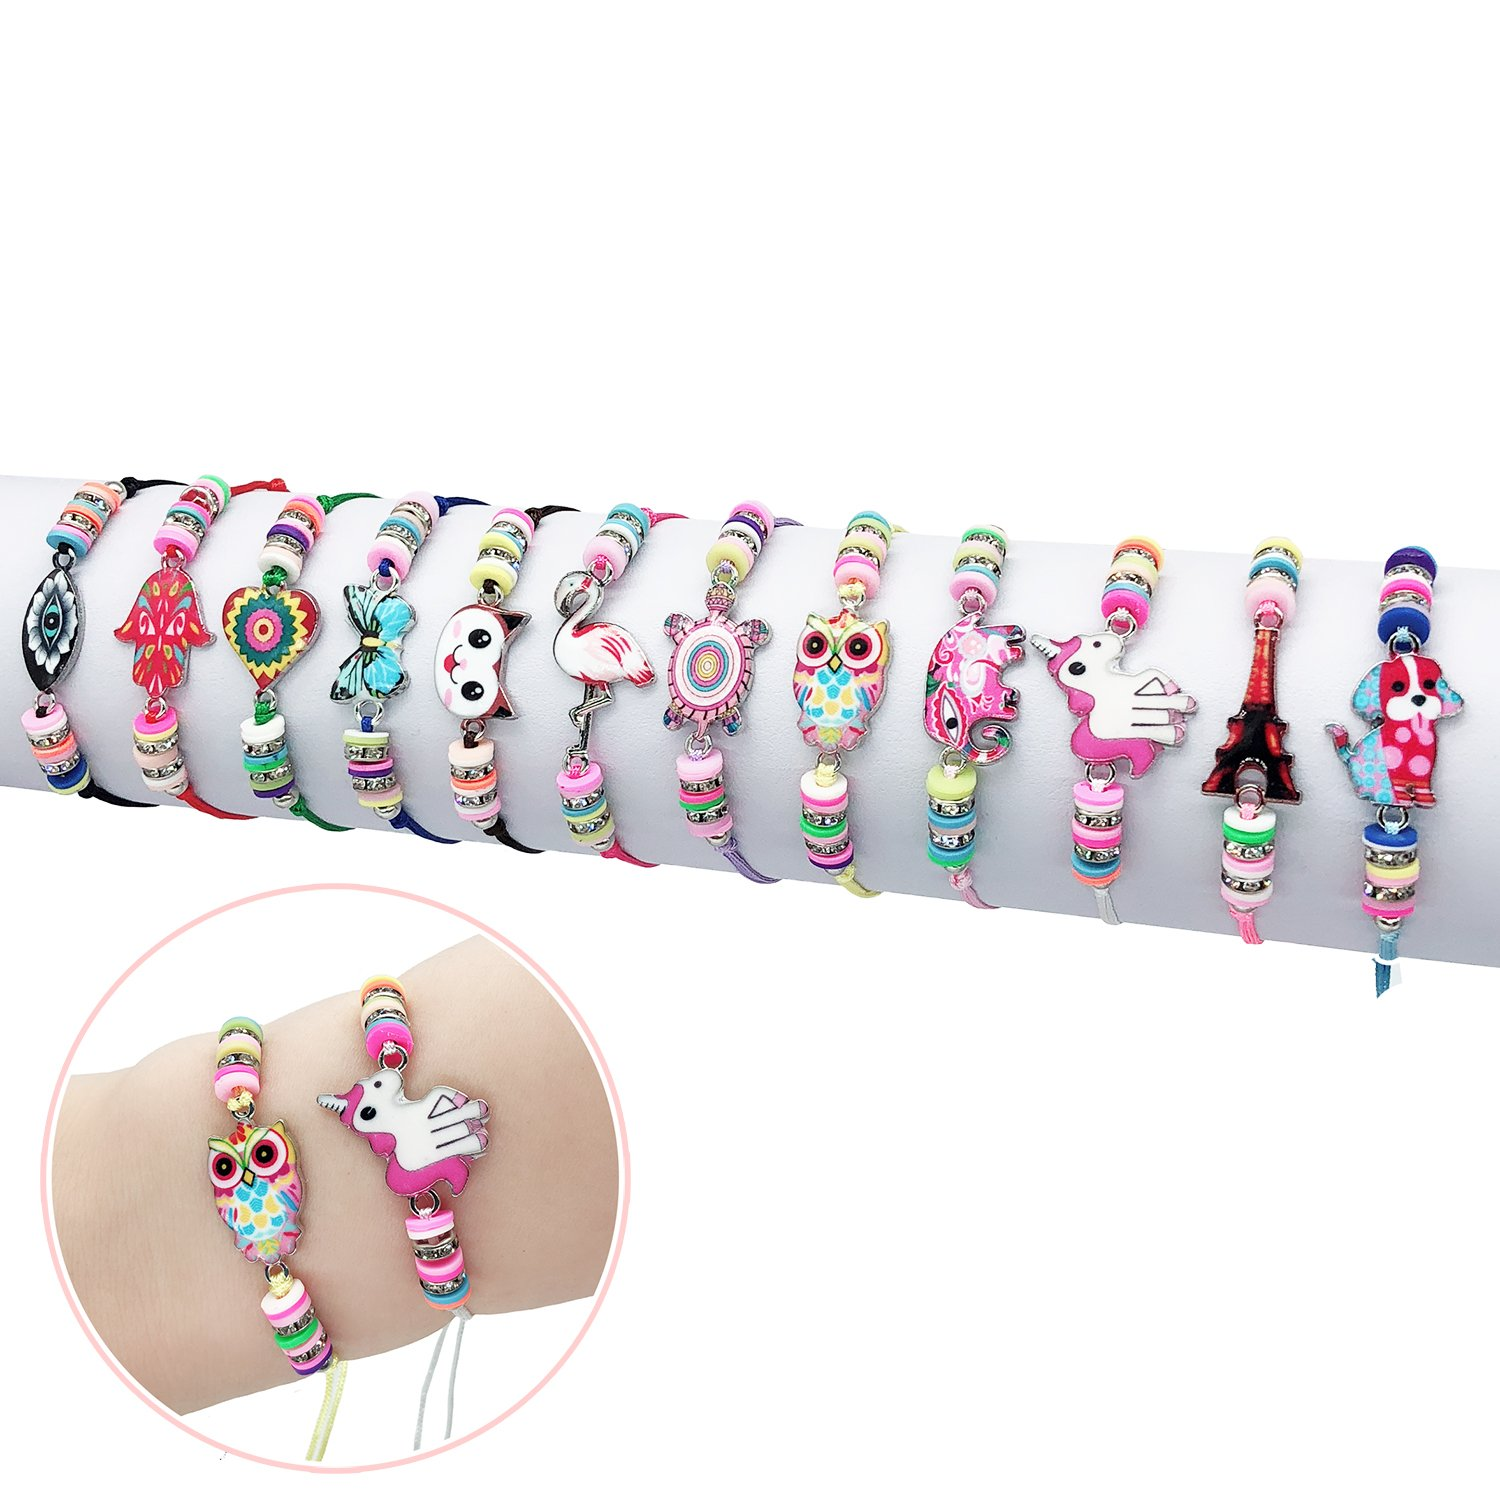 Elesa Miracle 12Pc Women Girl Unicorn Owl Woven Friendship Value Set Kids Party Favor Adjustable Bracelet, One Size, Multicolor by Elesa Miracle